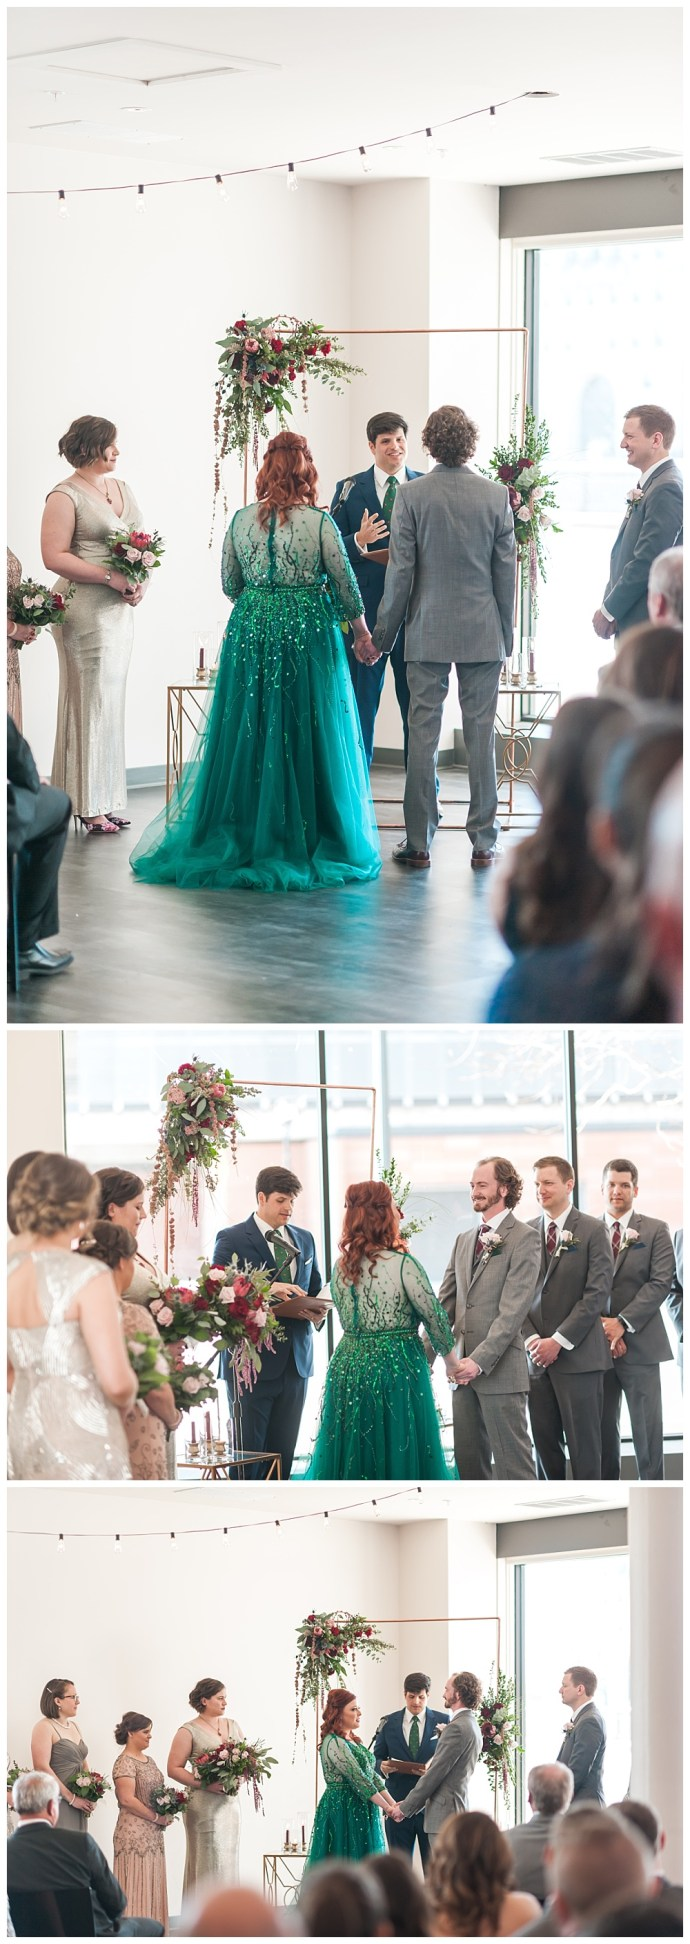 Stephanie Marie Photography Eastbank Venue and Lounge Cedar Rapids Iowa City Wedding Photographer Pete Leslie Akers 54